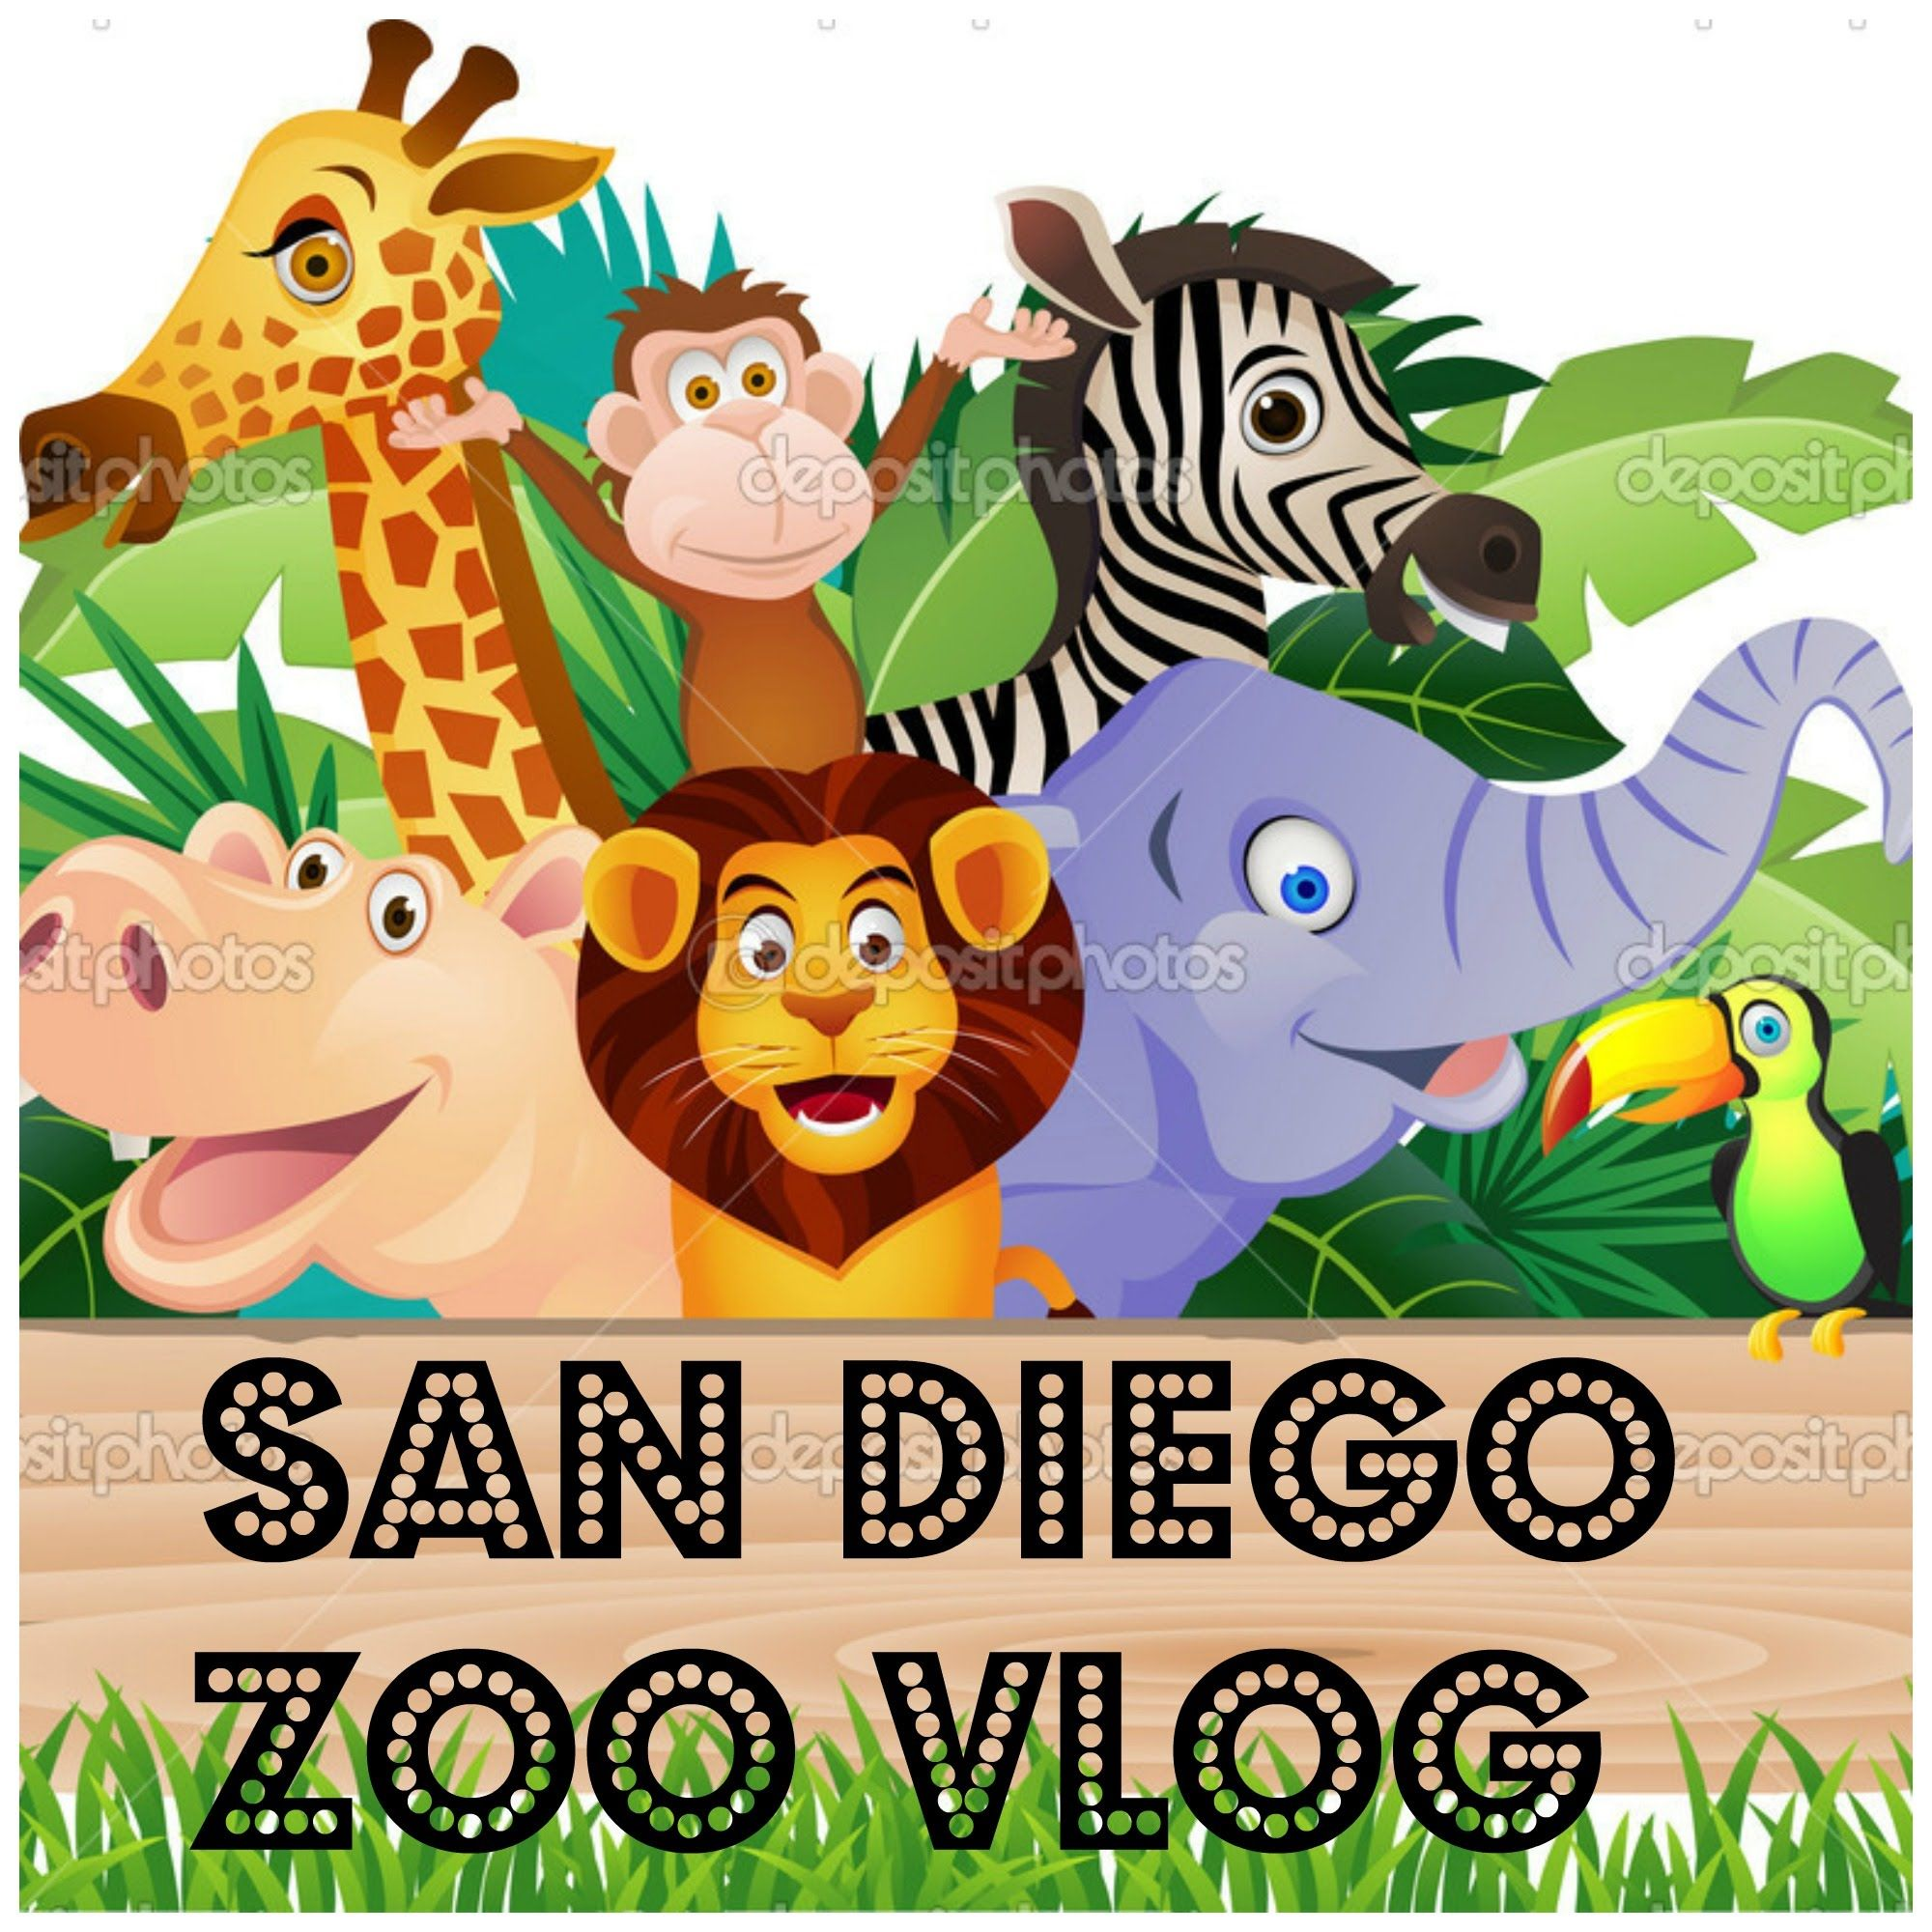 San Diego Zoo Vlog With Images Cartoon Animals Animals